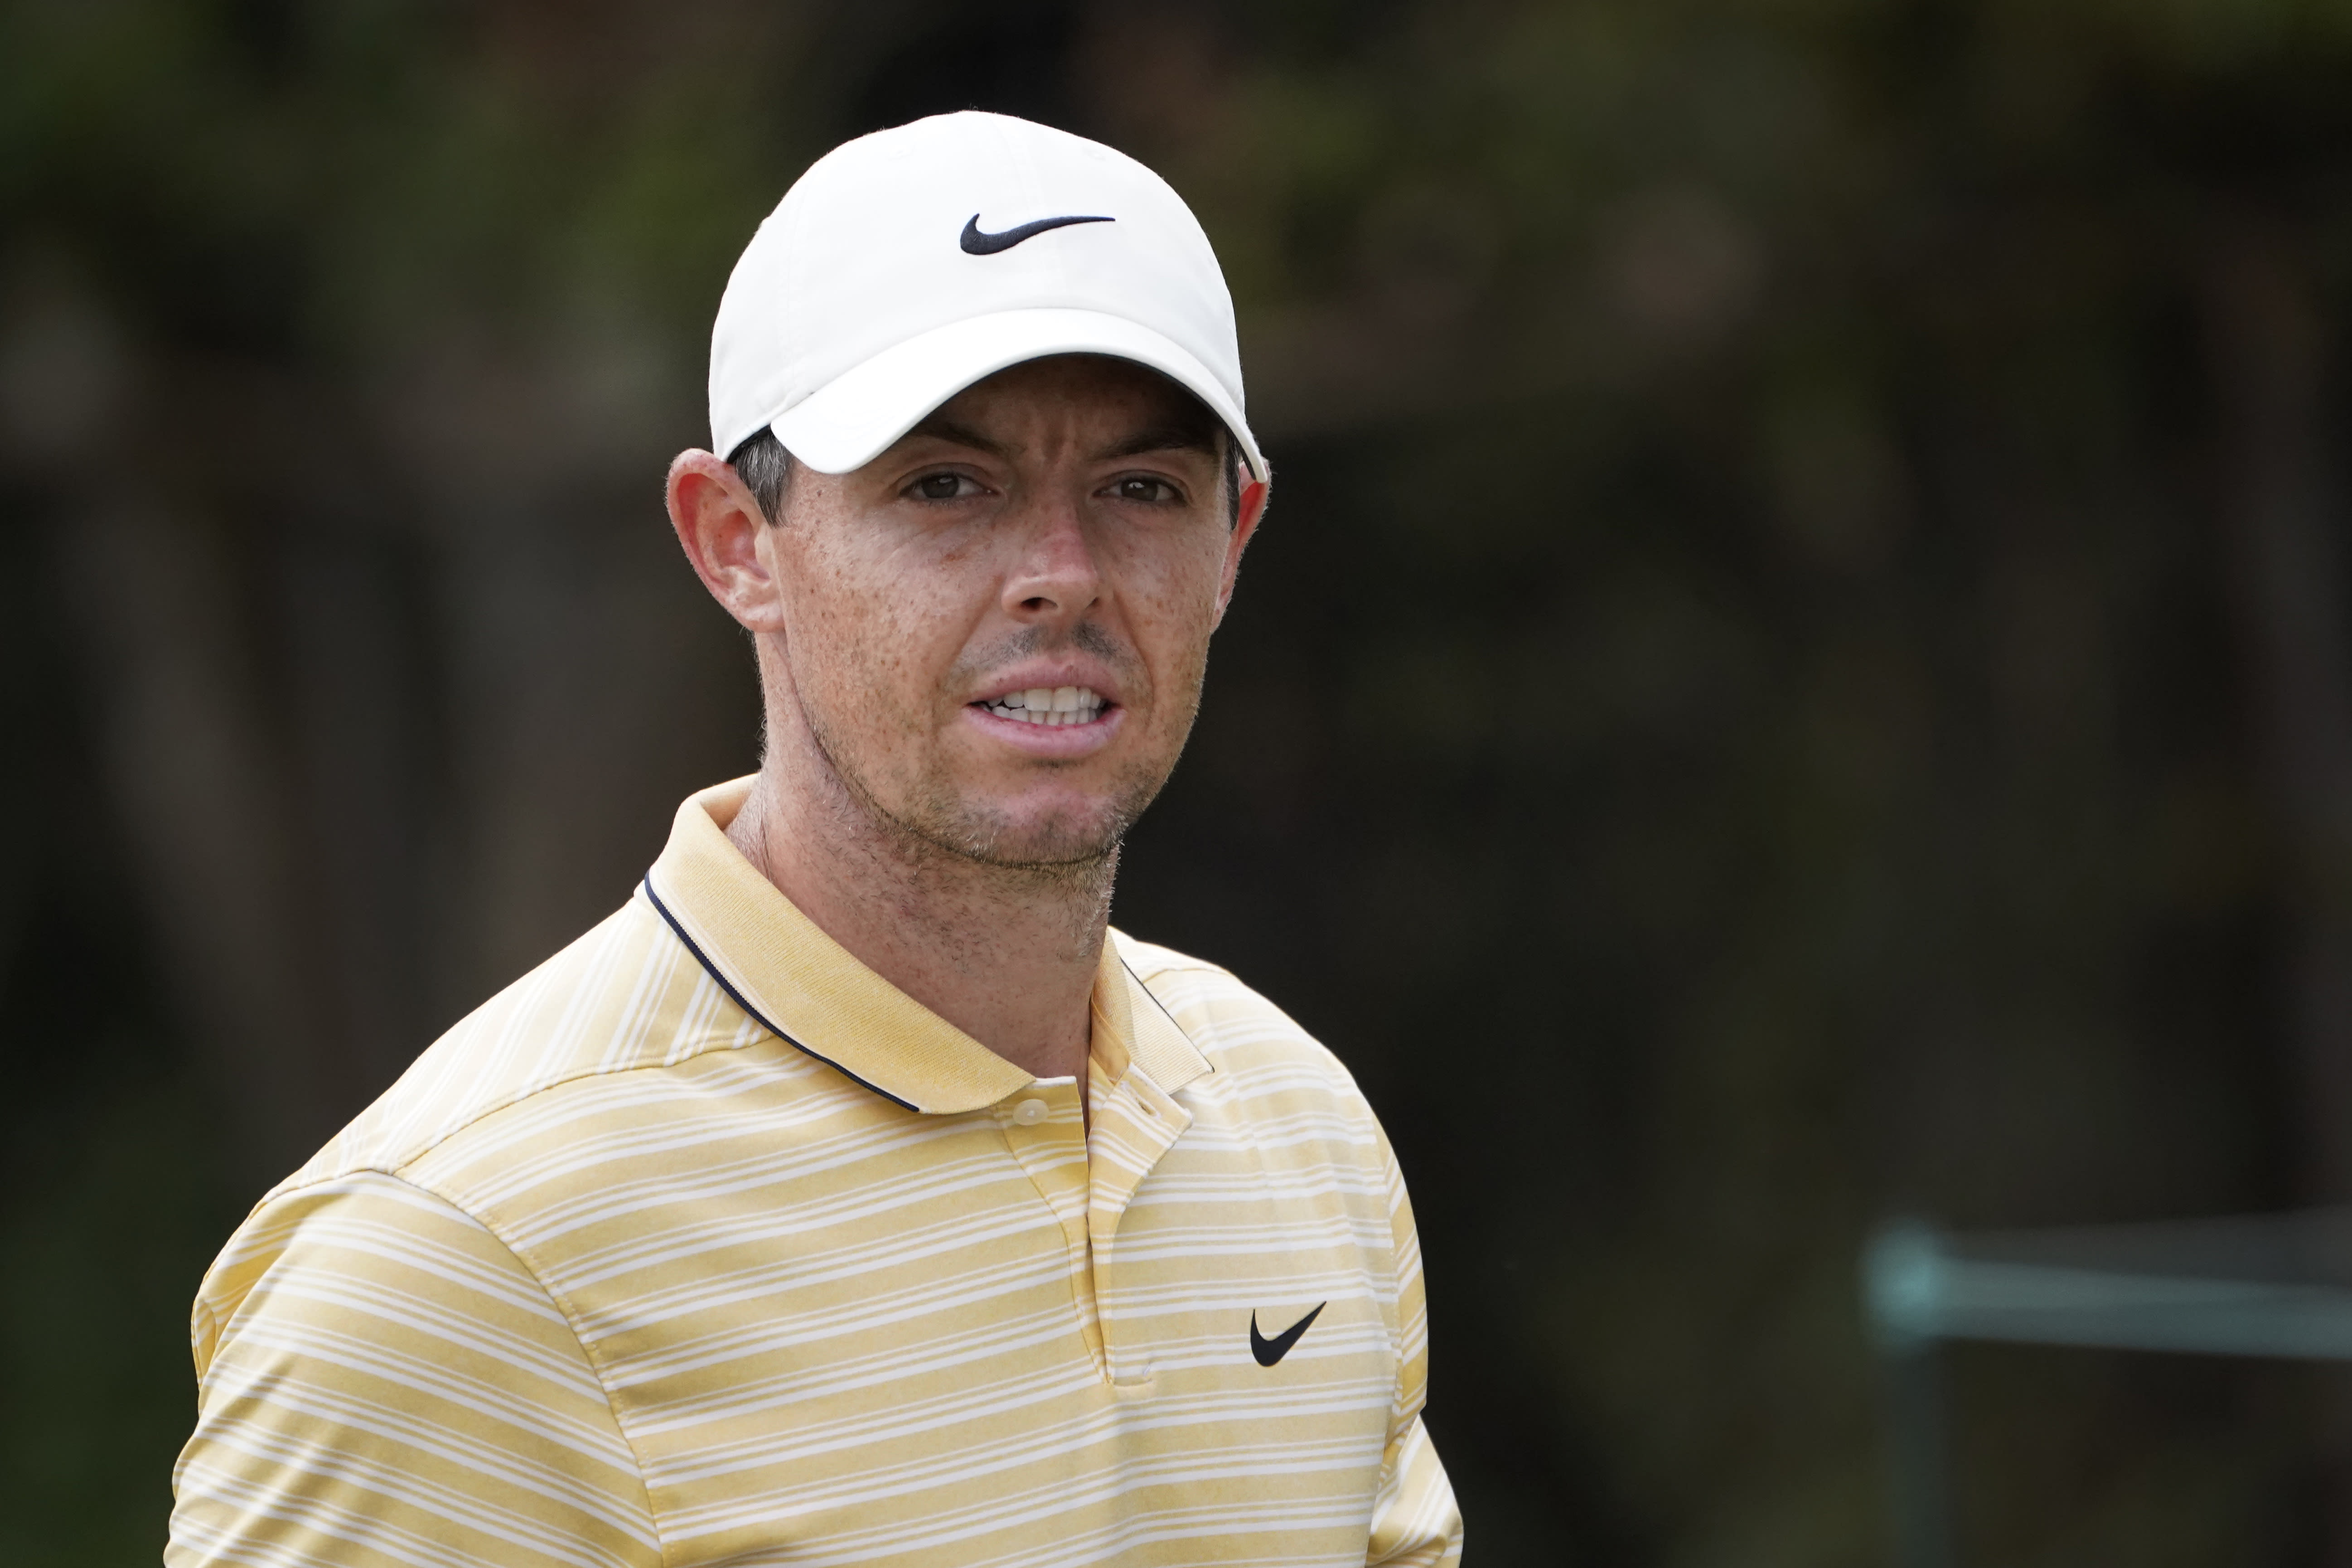 Rory McIlroy, of Northern Ireland, looks down the second fairway during the third round Saturday, Aug. 29, 2020, for the BMW Championship golf tournament at the Olympia Fields Country Club in Olympia Fields, Ill. (AP Photo/Charles Rex Arbogast)